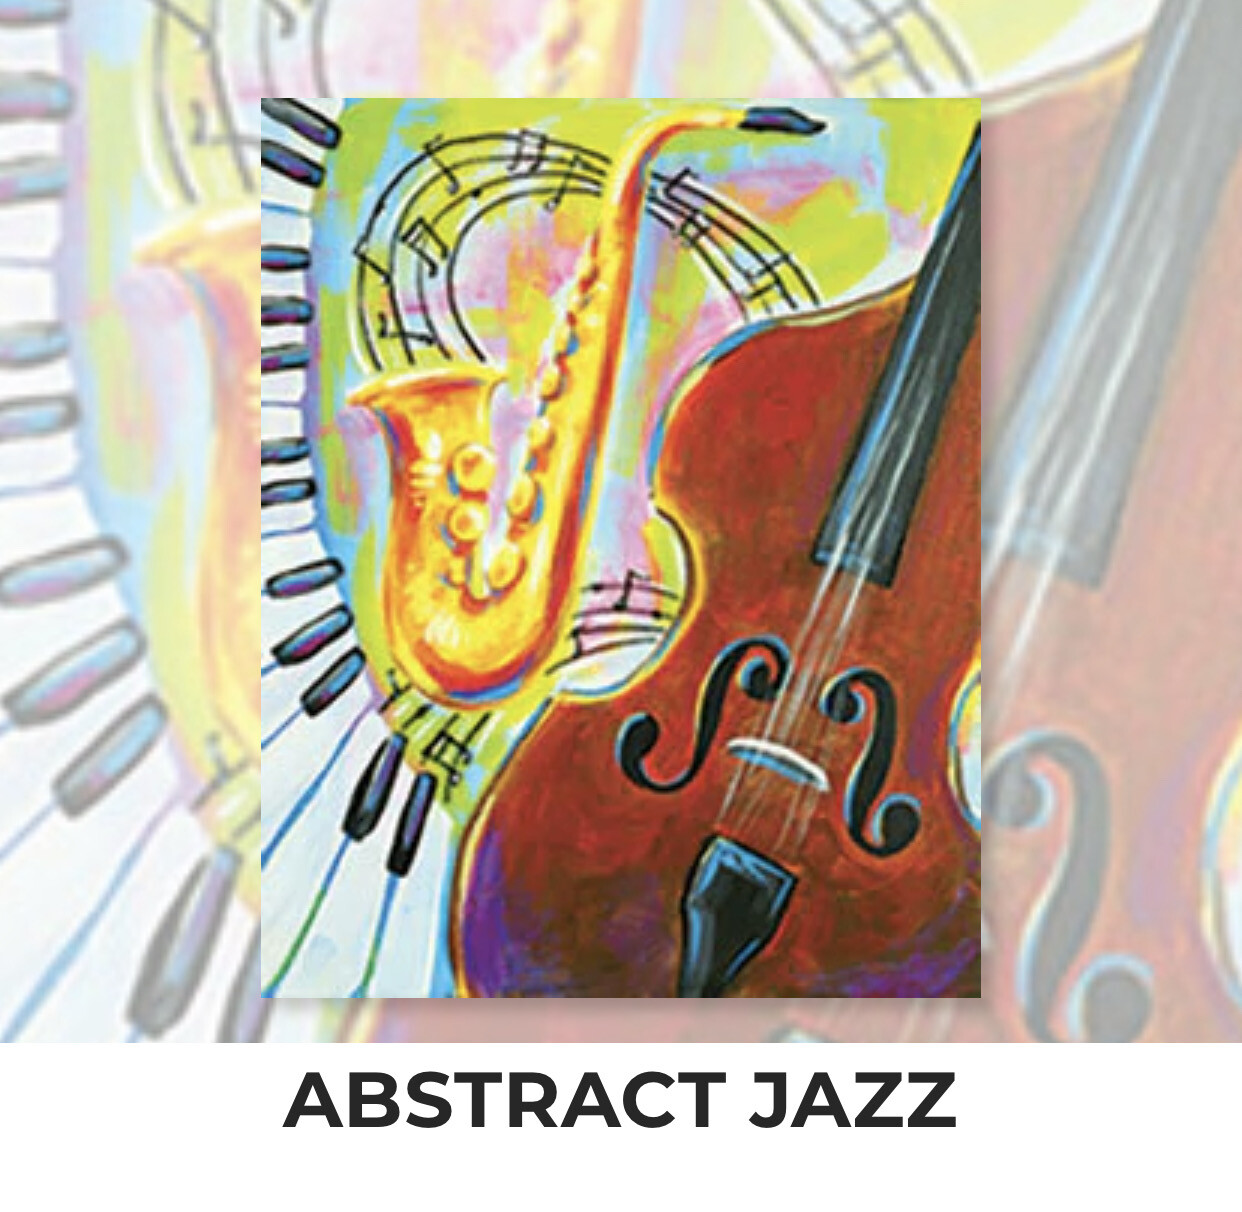 Abstract Jazz ADULT Acrylic Paint On Canvas DIY Art Kit - 3 Week Special Order